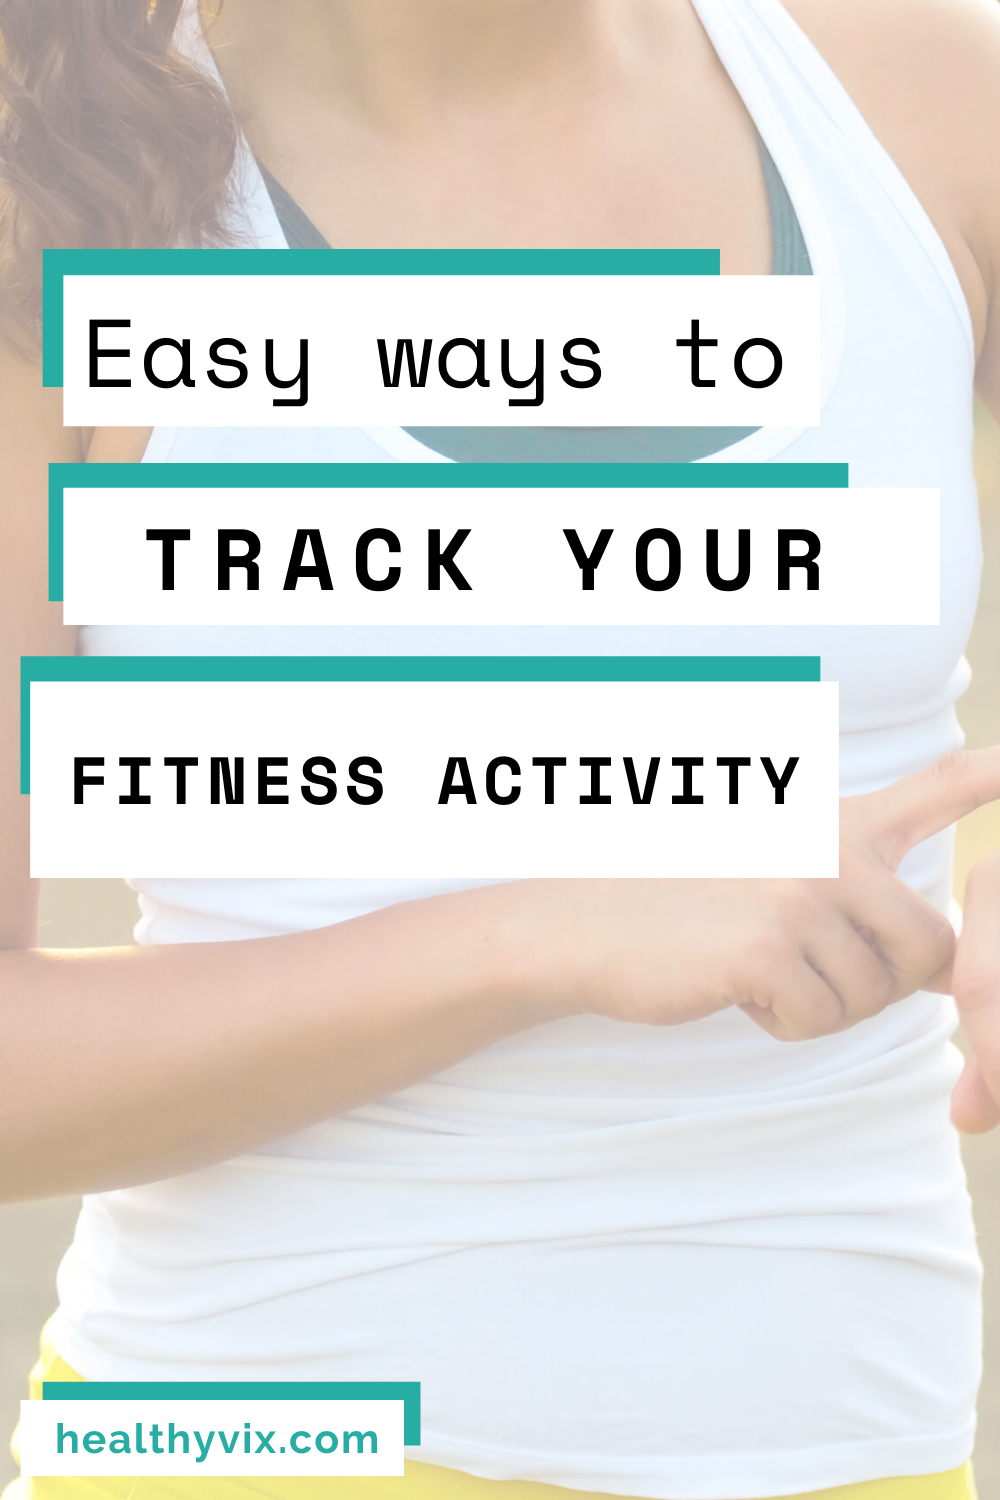 Easy ways to track your fitness activity